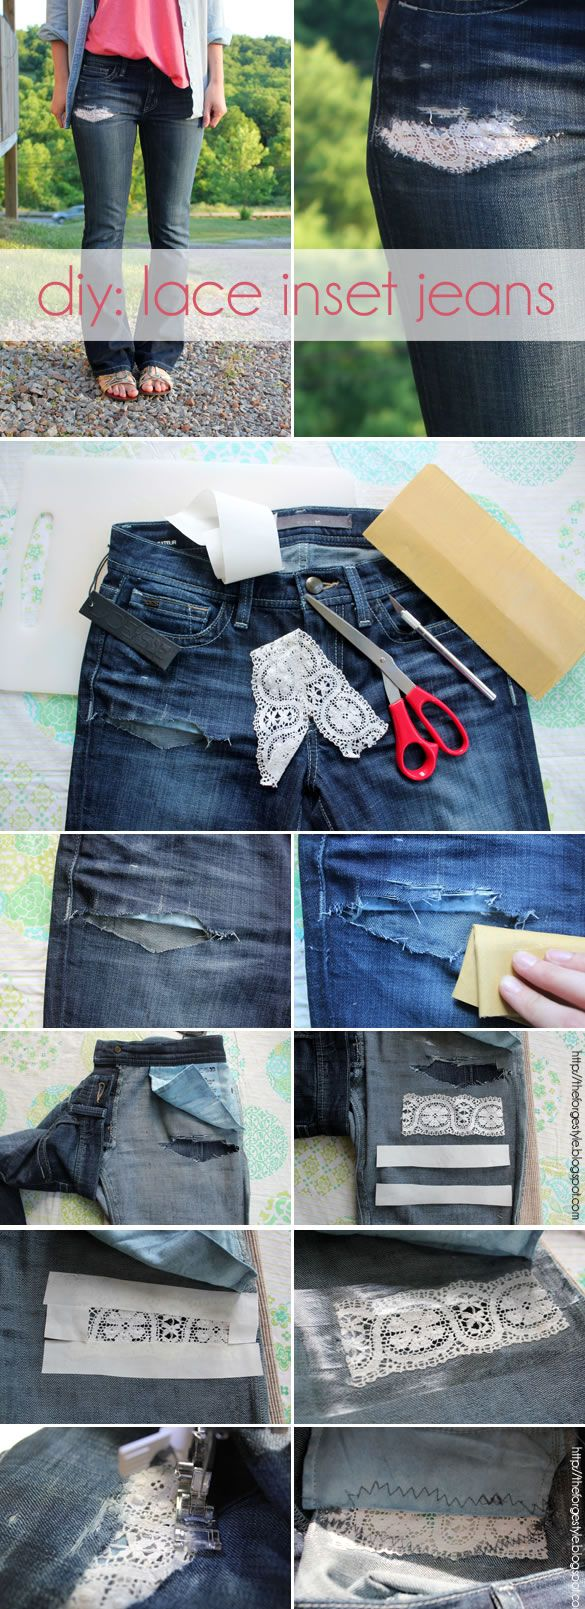 DIY: Lace inset jeans...need to fix my shorts